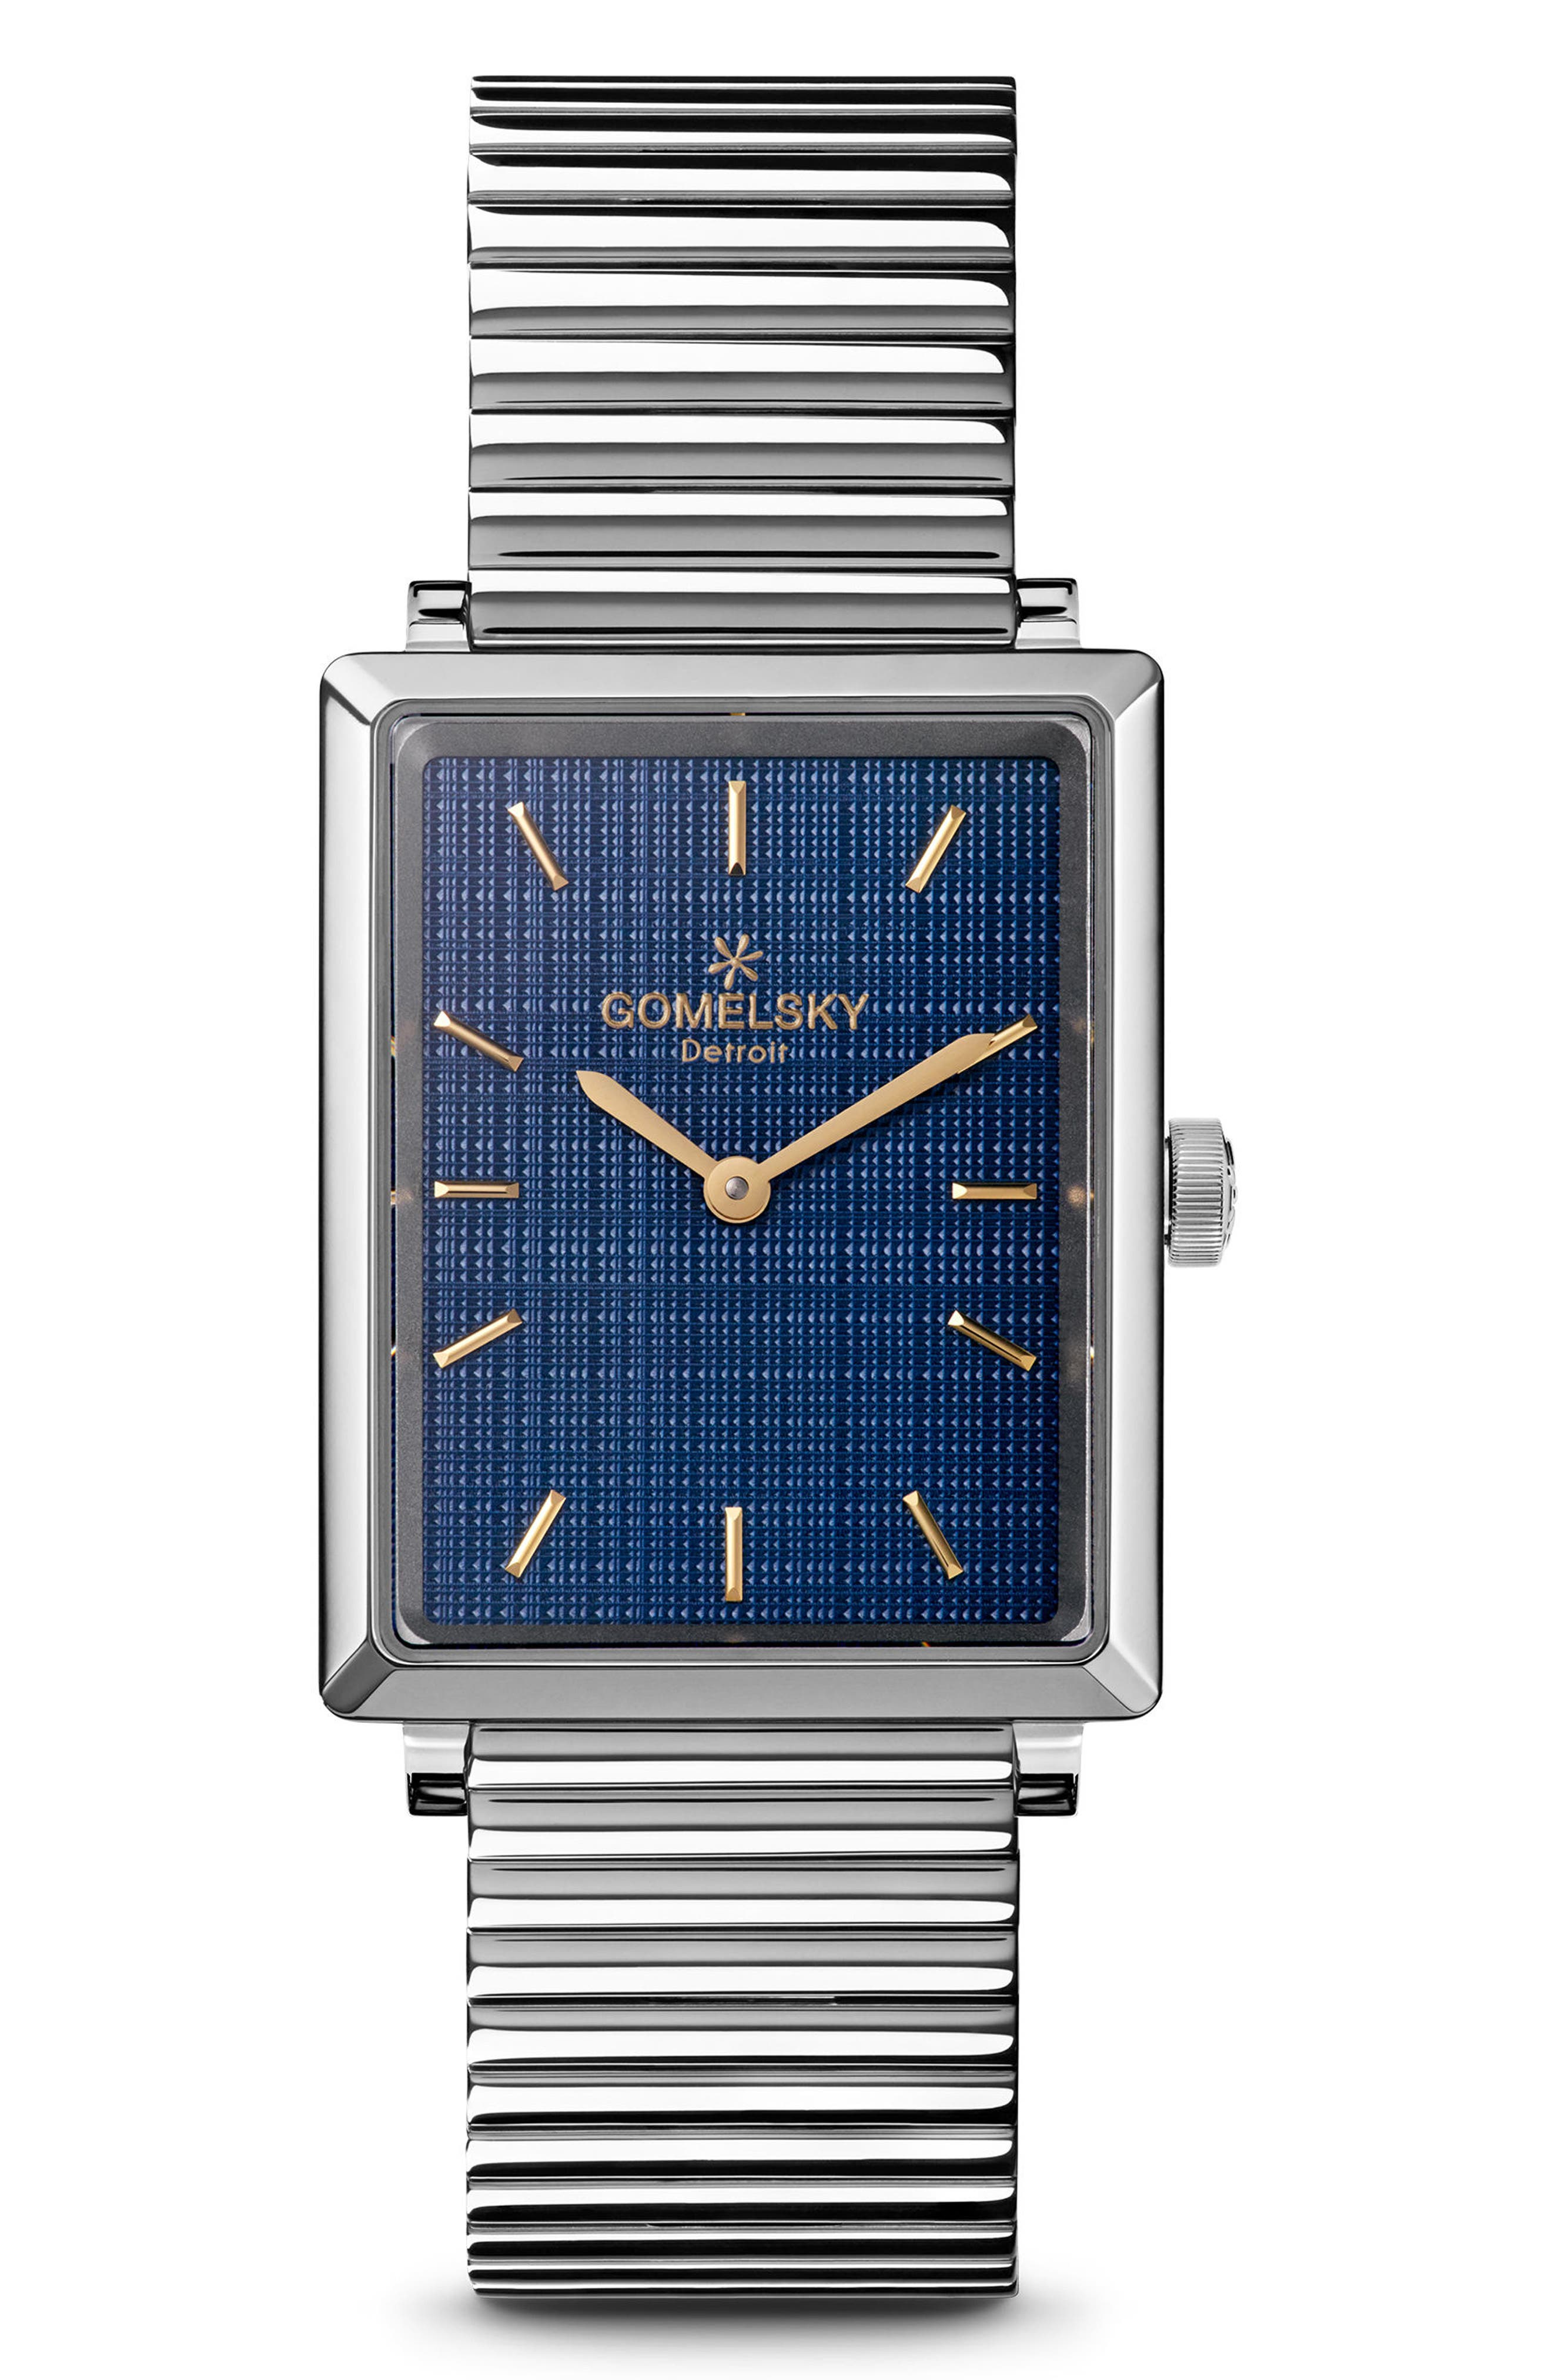 GOMELSKY THE SHIRLEY FROMER BRACELET WATCH, 32MM X 25MM